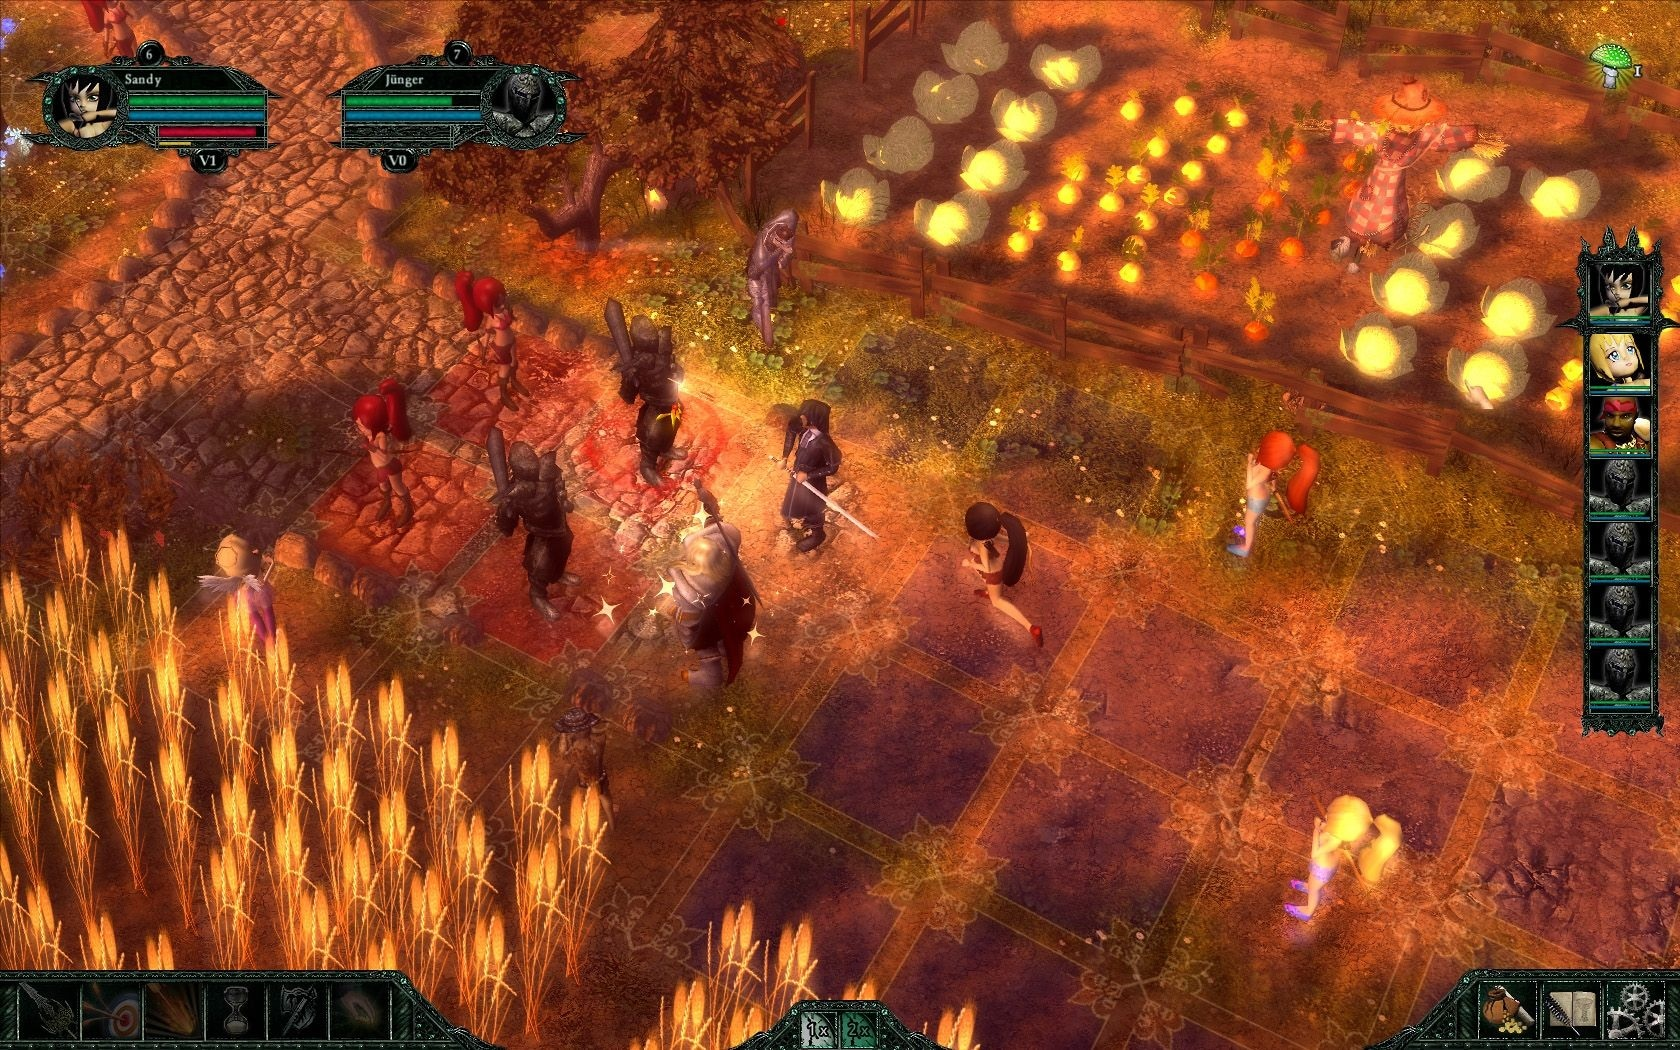 Grotesque Tactics: Evil Heroes Steam Key GLOBAL - 4